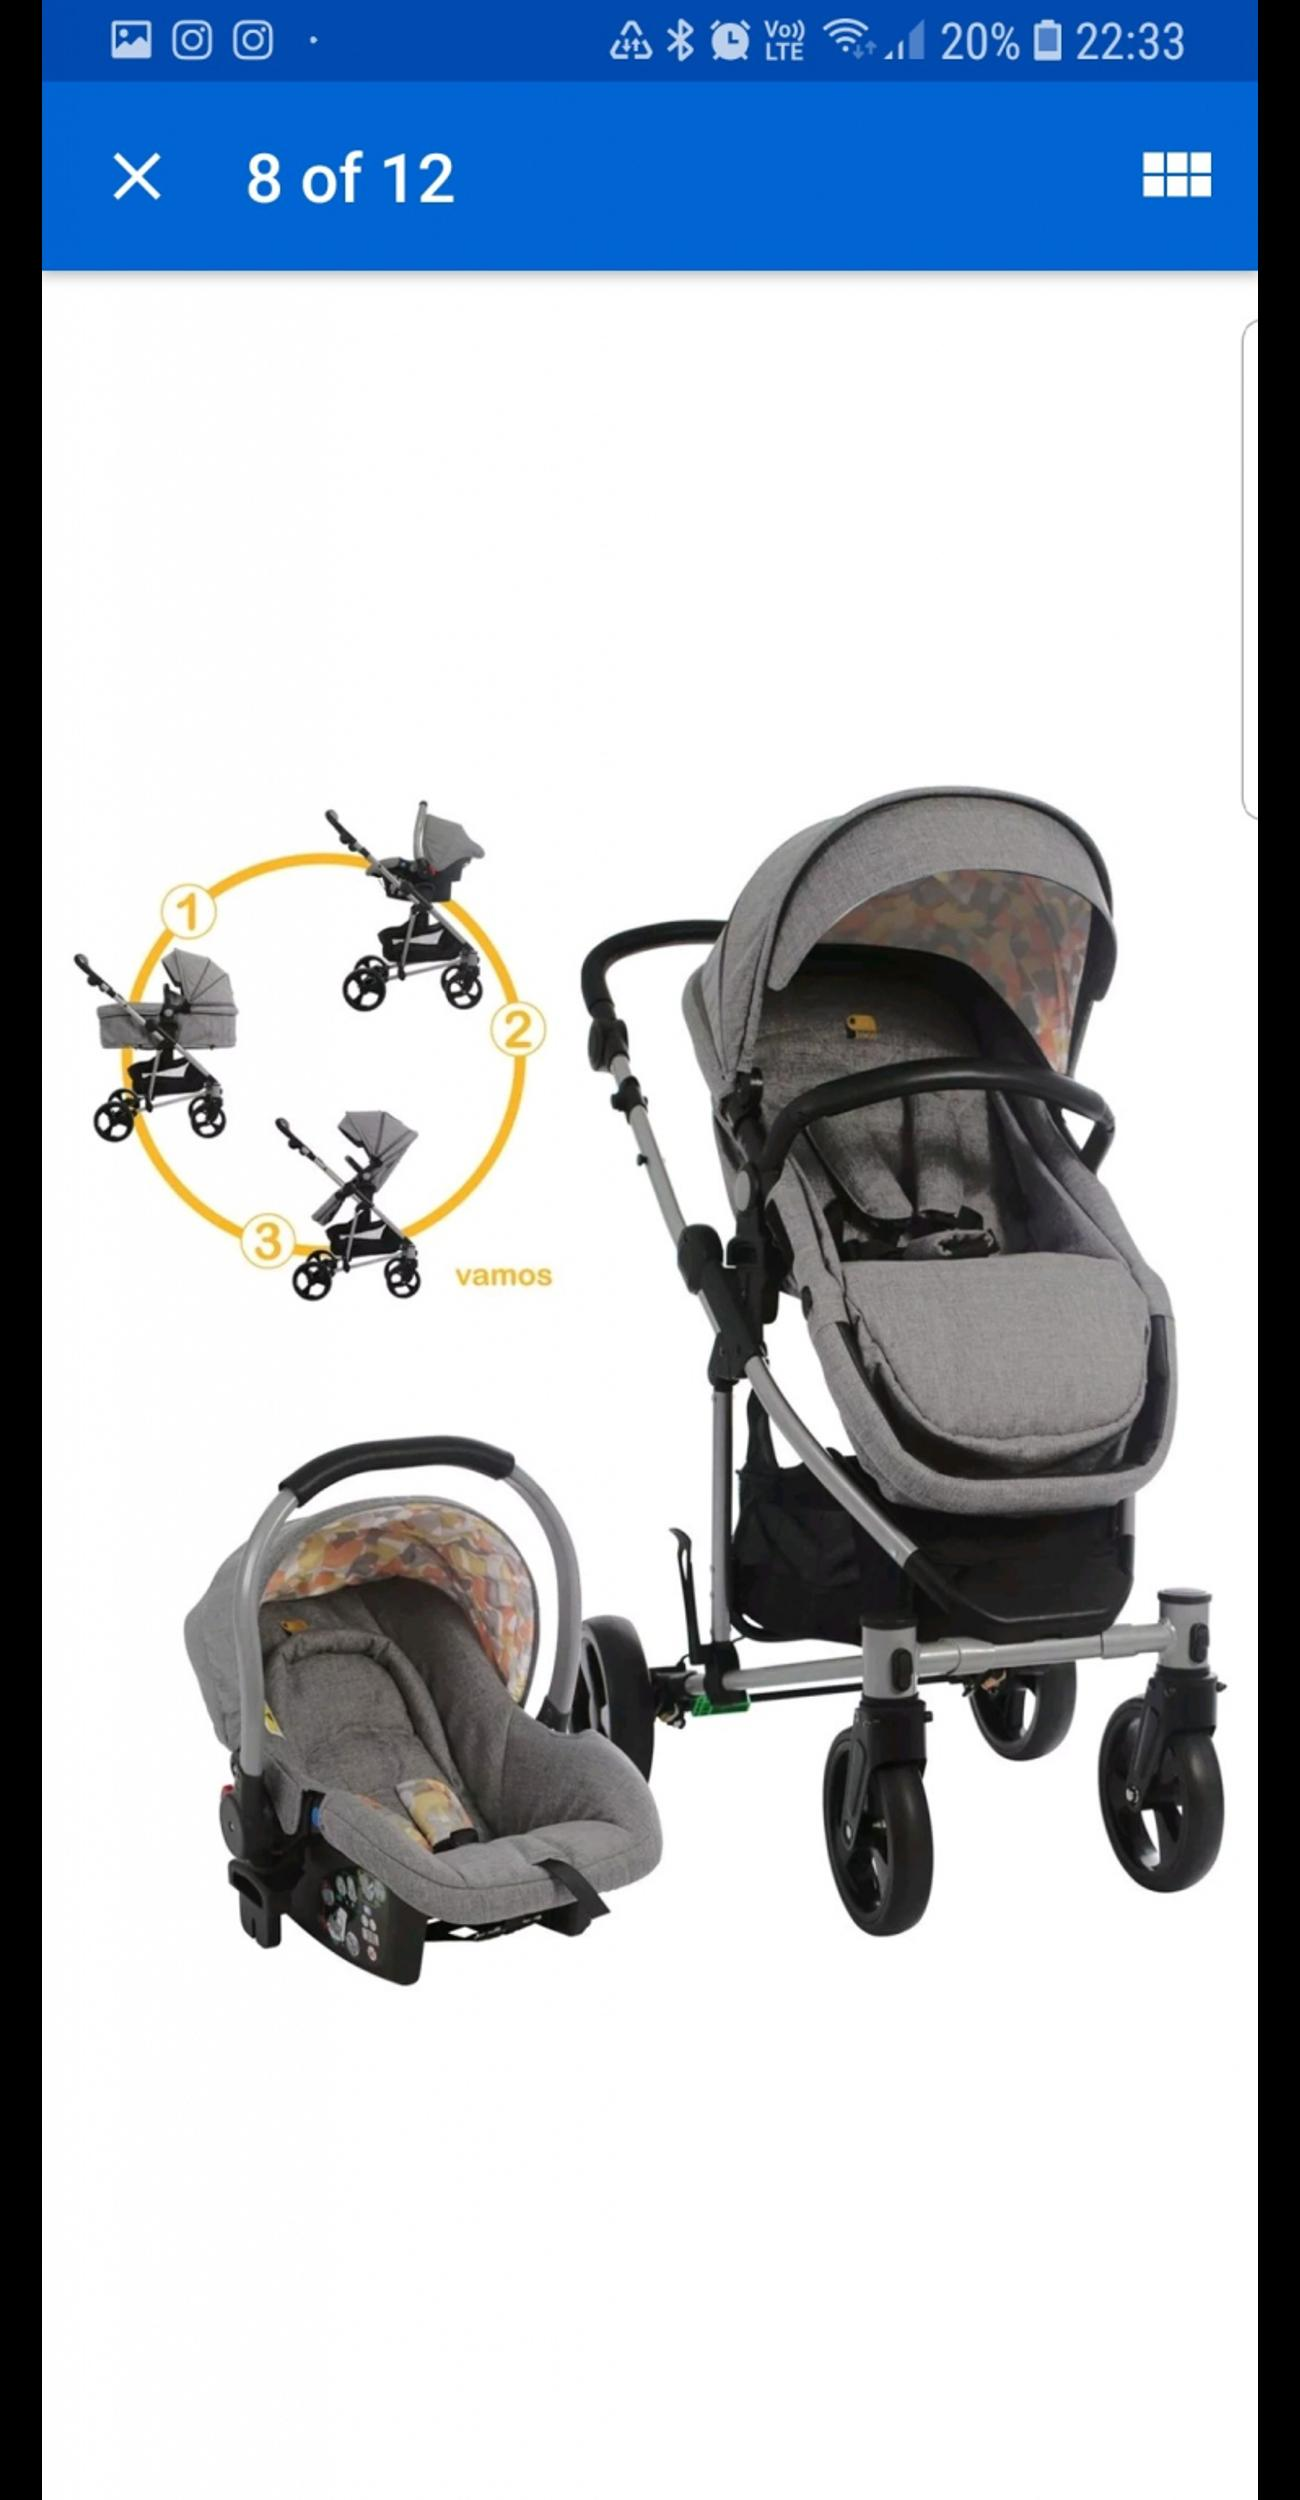 Travel System With Convertible Car Seat Toco Vamos Convertible Stroller Travel System In Br3 Bromley